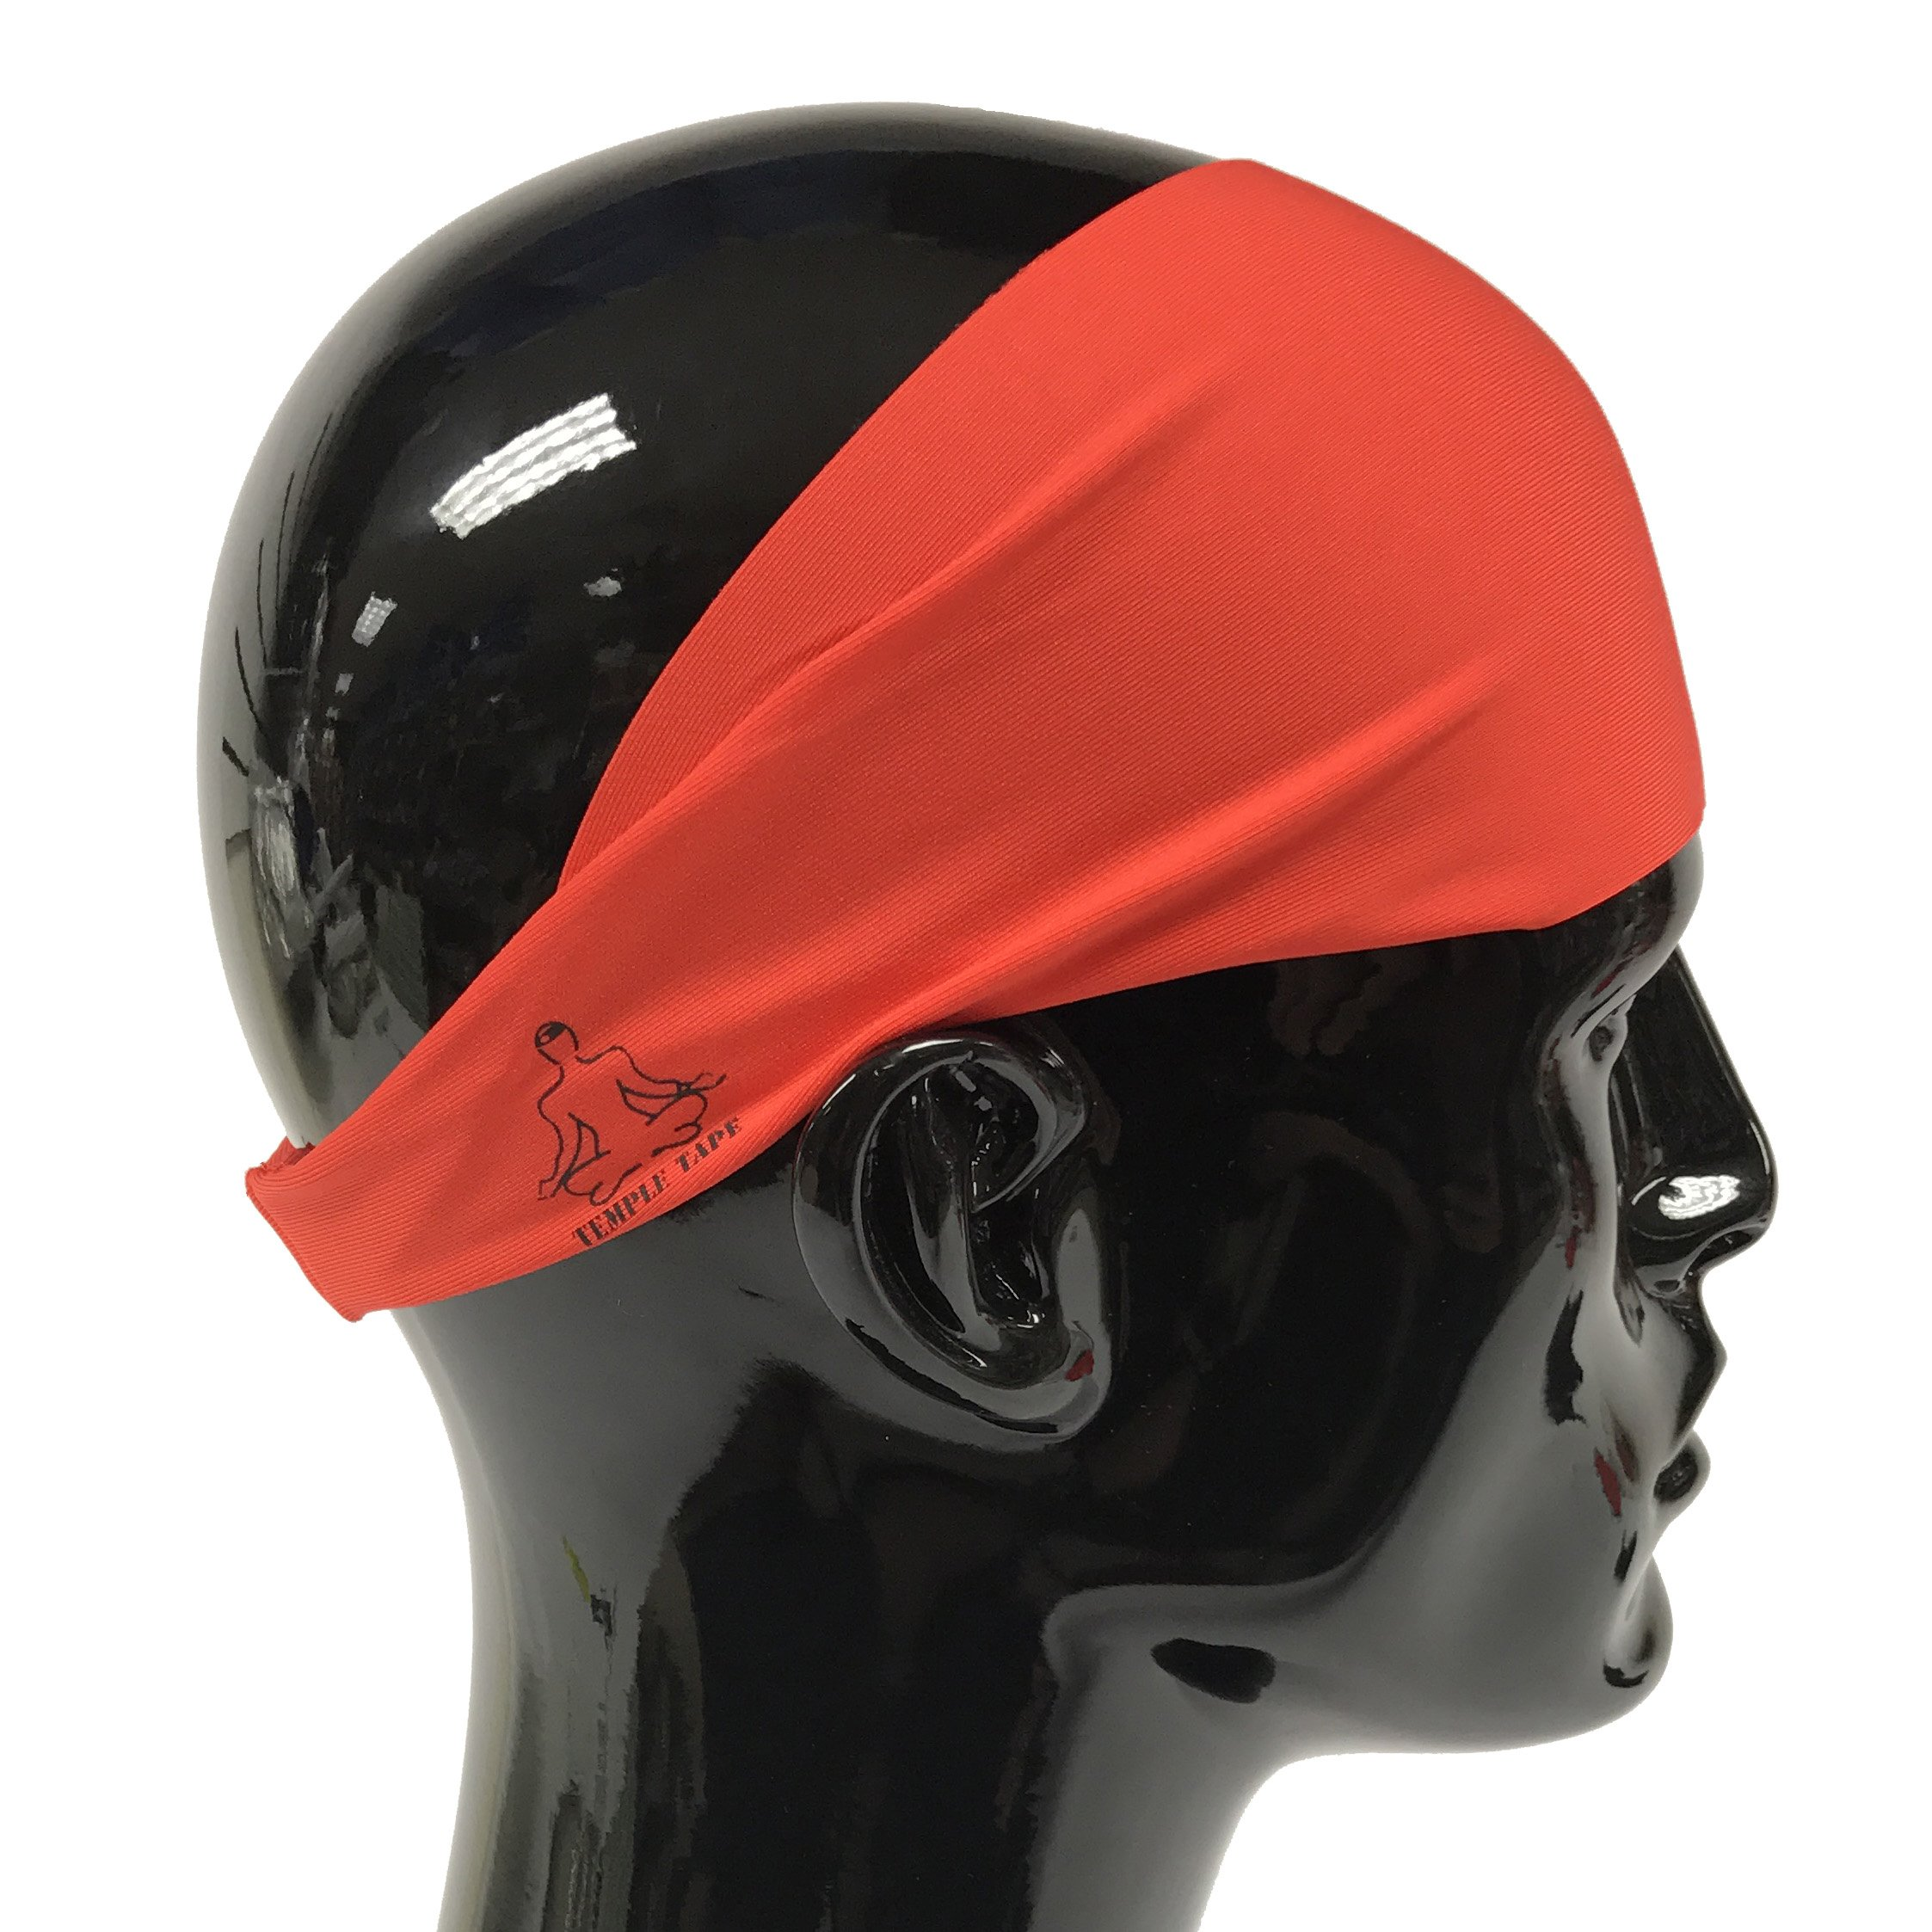 Temple Tape Headbands for Men and Women - Mens Sweatband & Sports Headband Moisture Wicking Workout Sweatbands for Running, Cross Training, Yoga and Bike Helmet Friendly - Red by Temple Tape